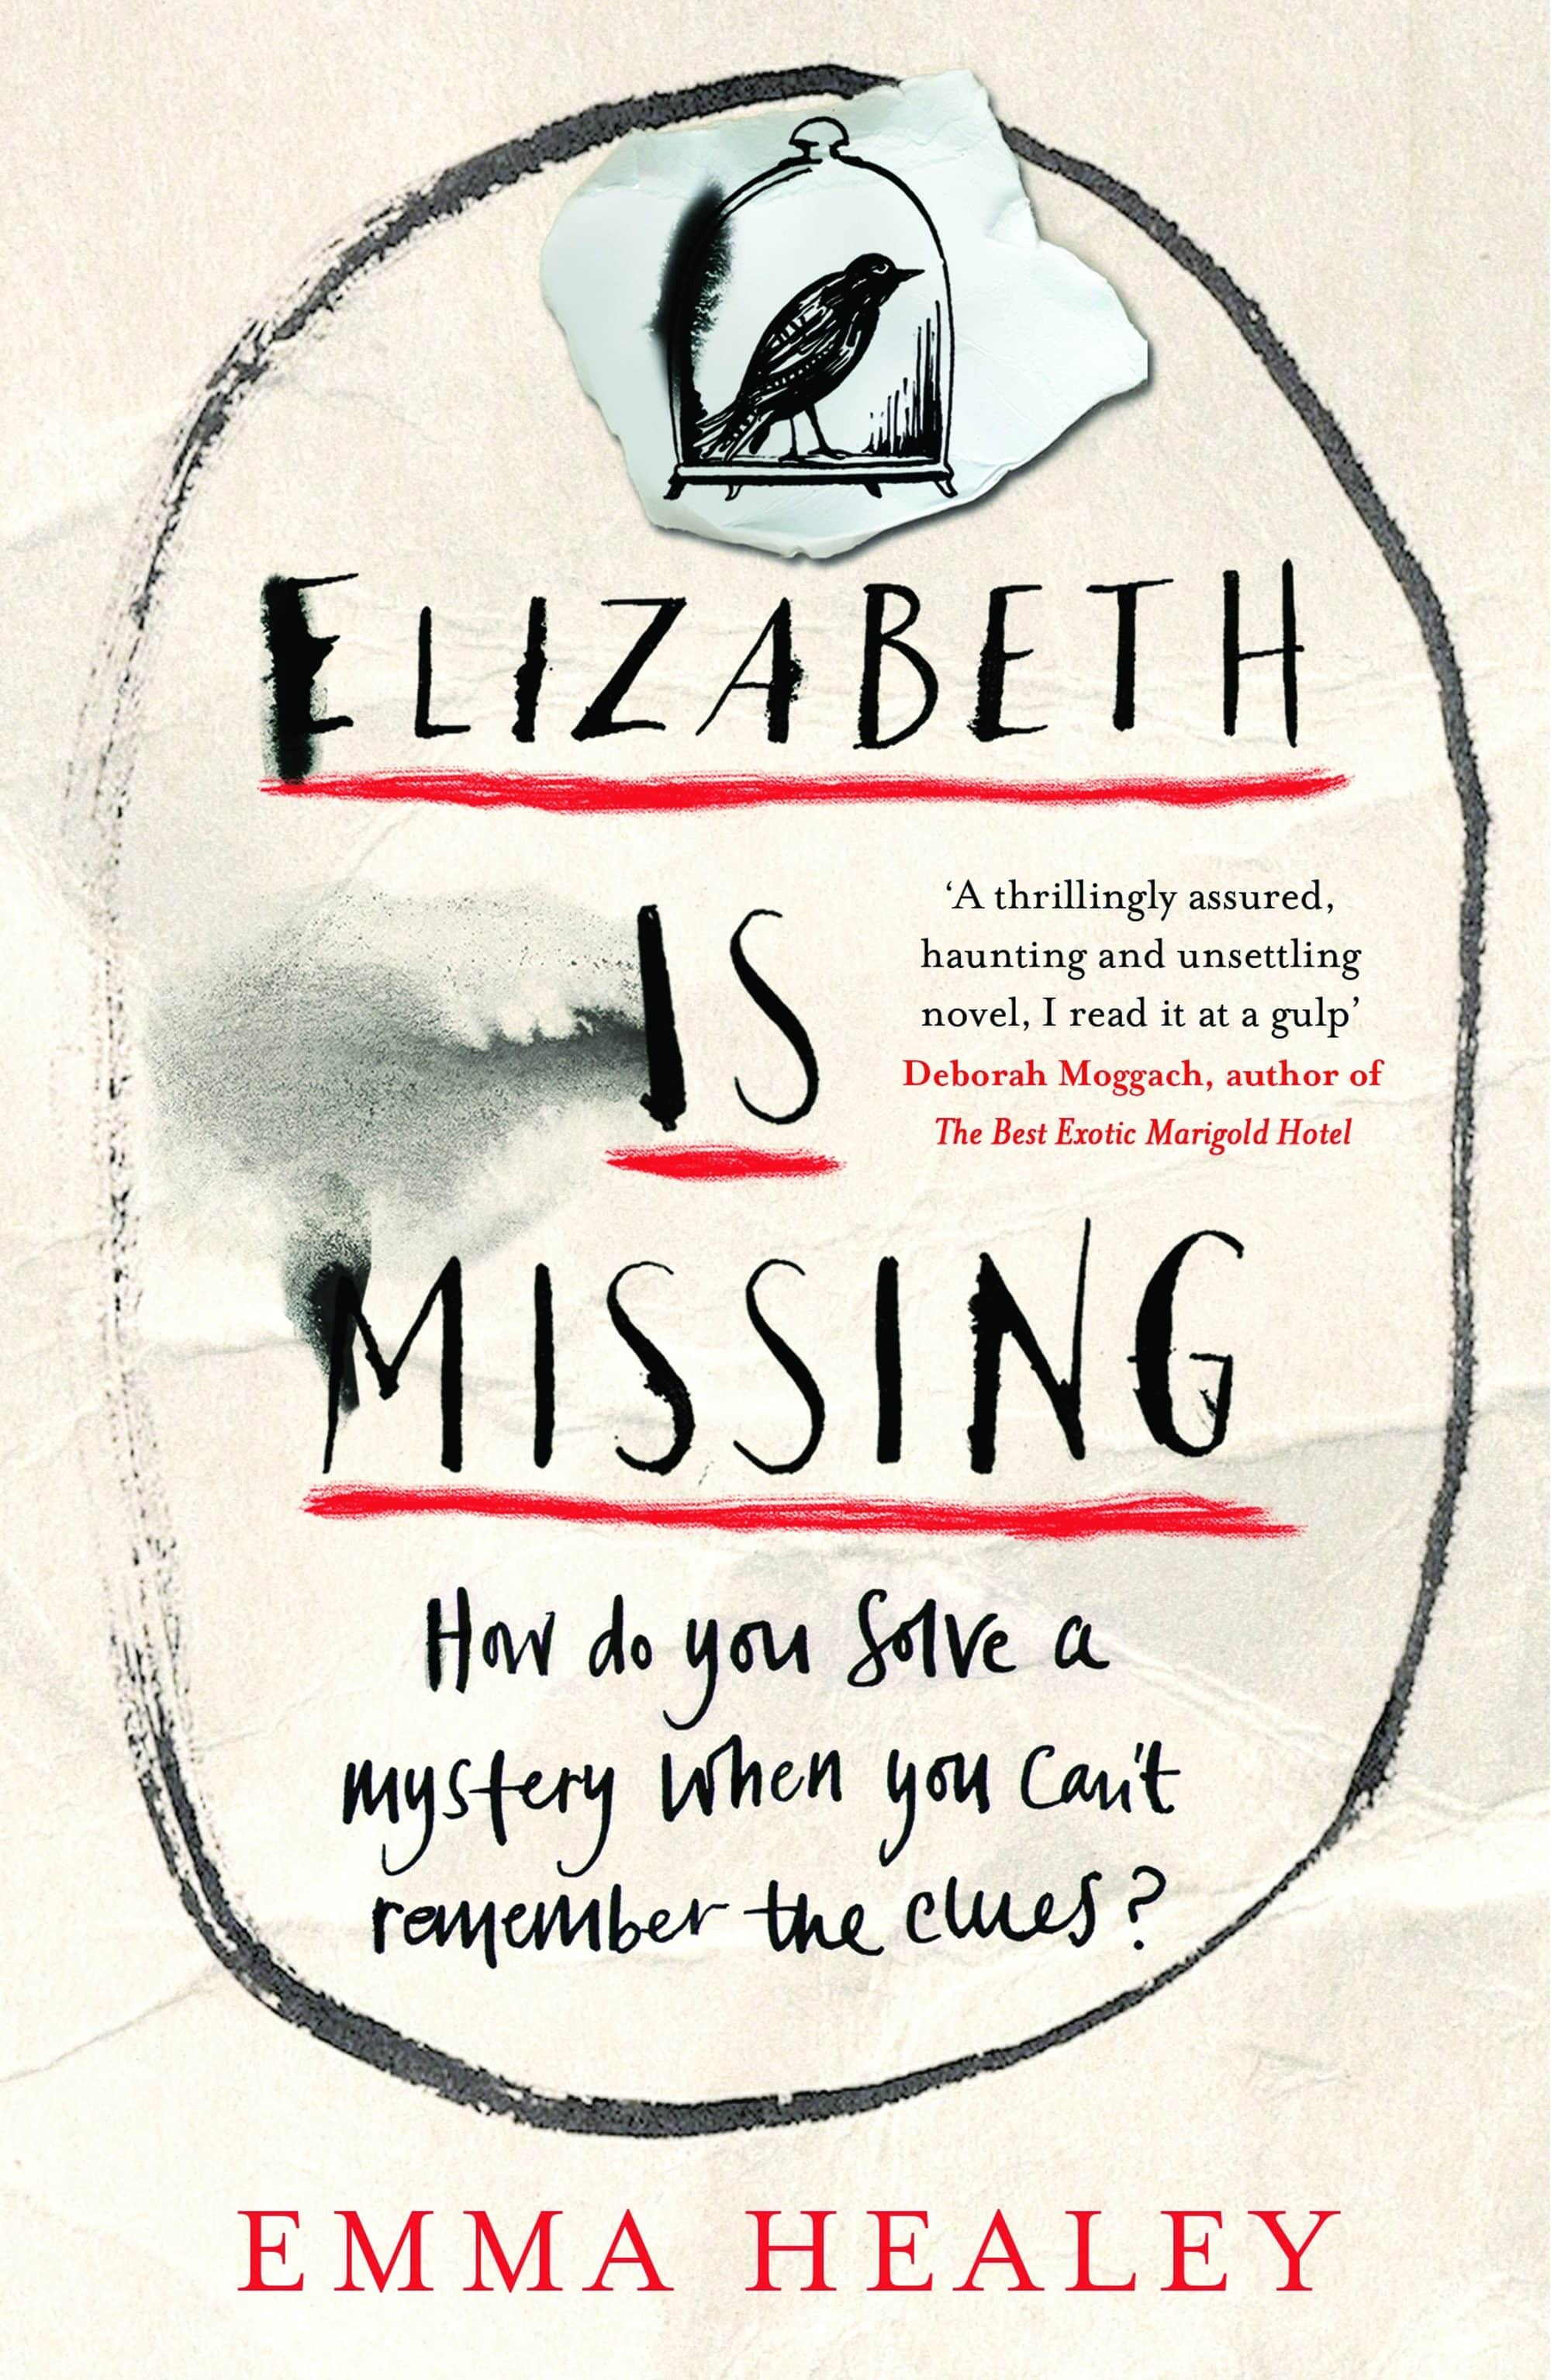 Elizabeth is Missing – Emma Healey